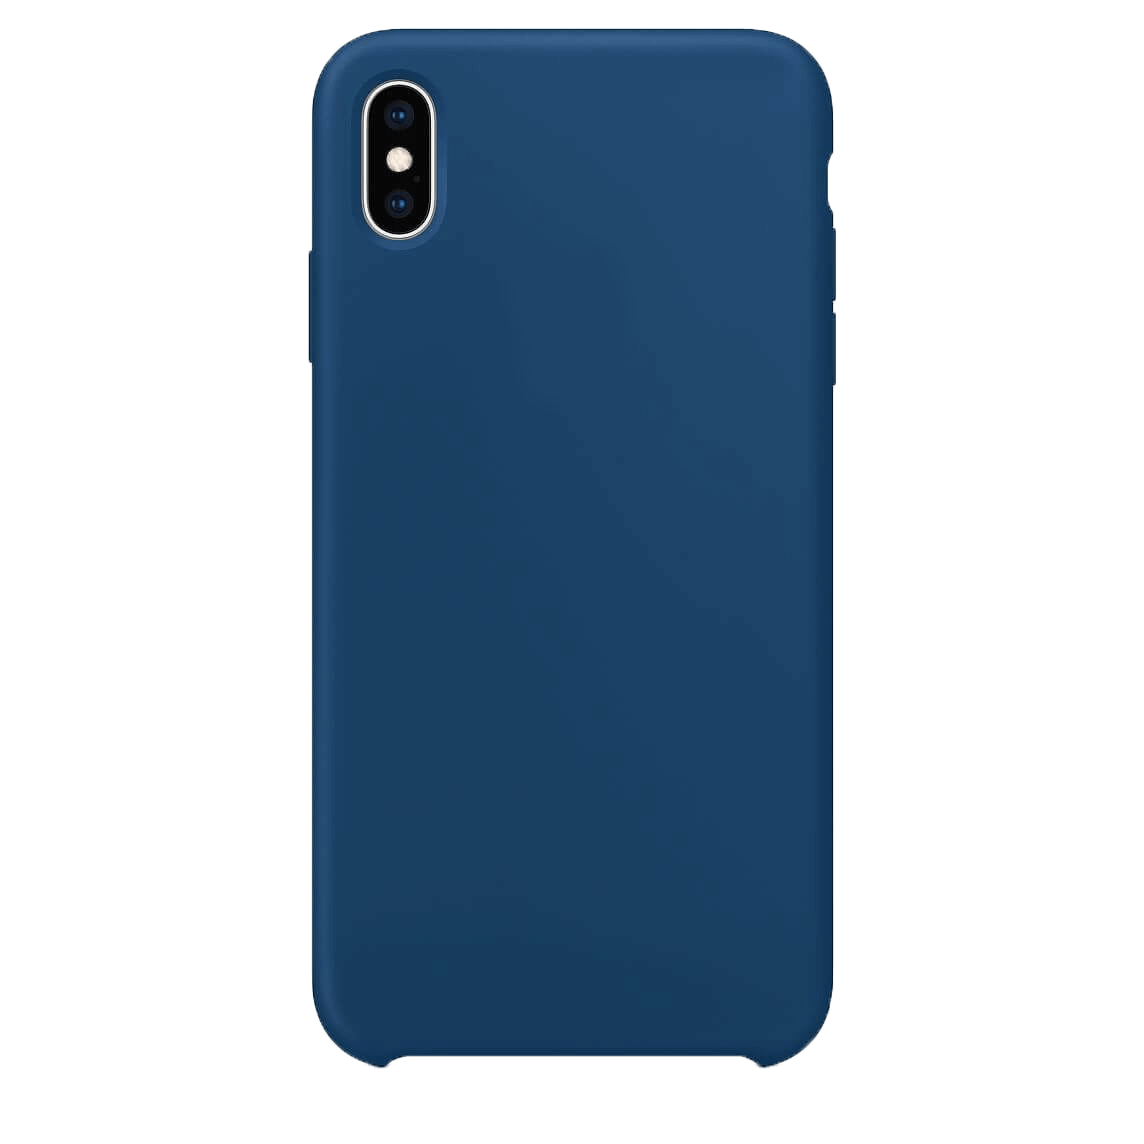 Phone Rubber Bumper Case